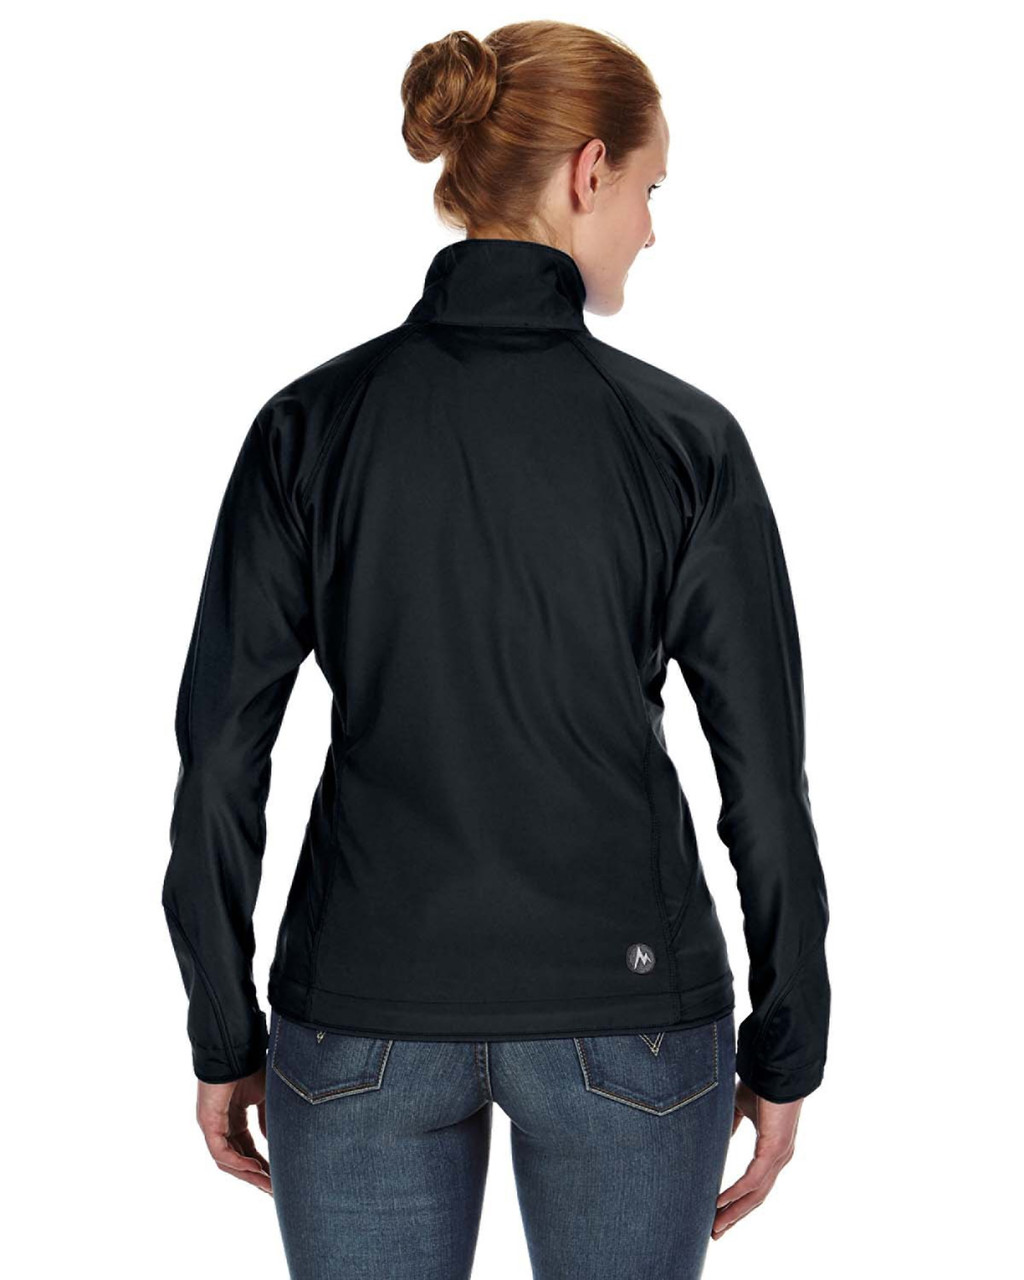 Black - 8587 Marmot Ladies' Levity Jacket | BlankClothing.ca